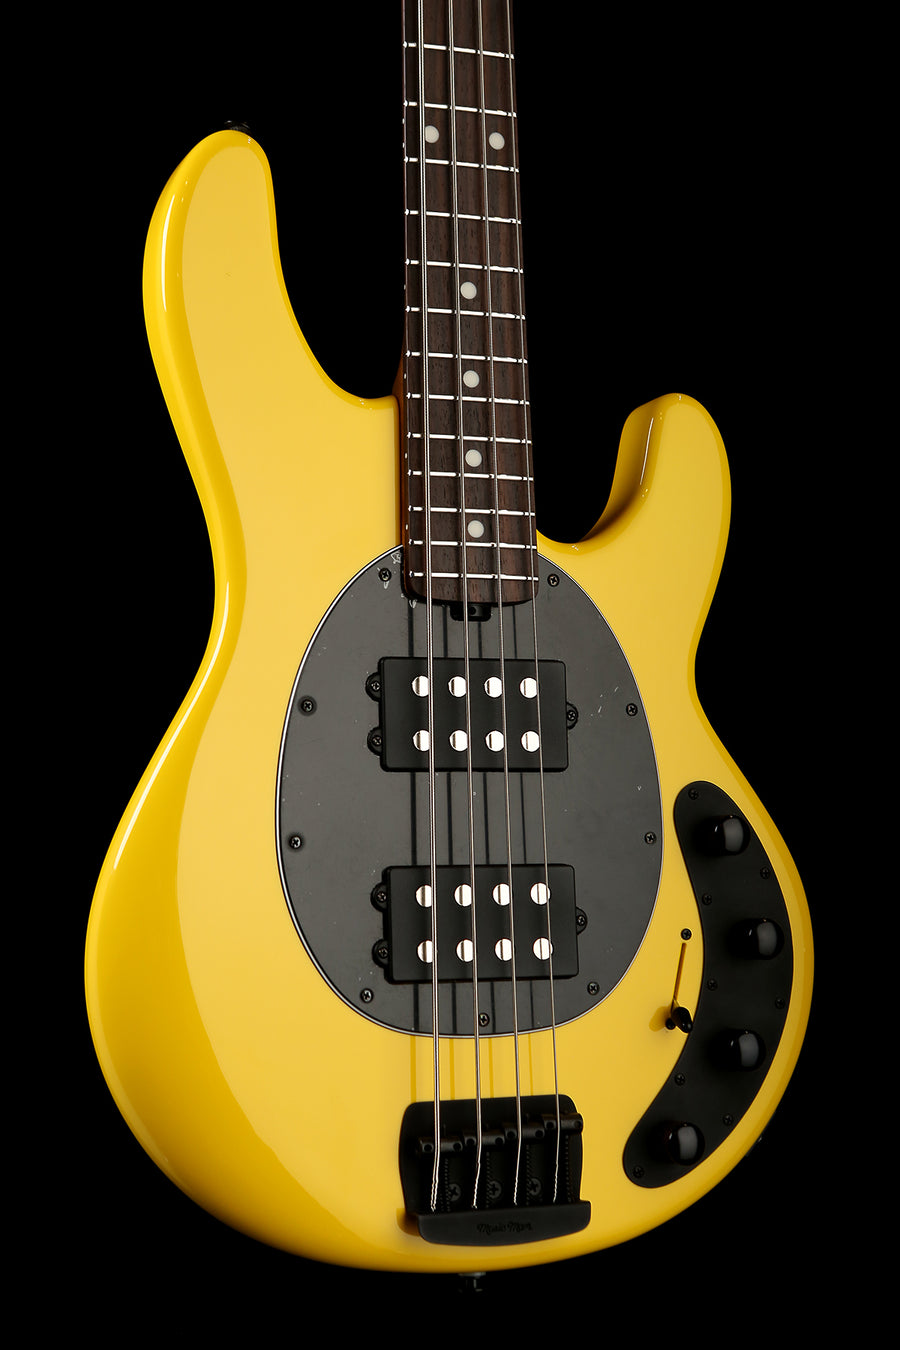 Ernie Ball Musicman Stingray Special 4HH Hi Def Yellow